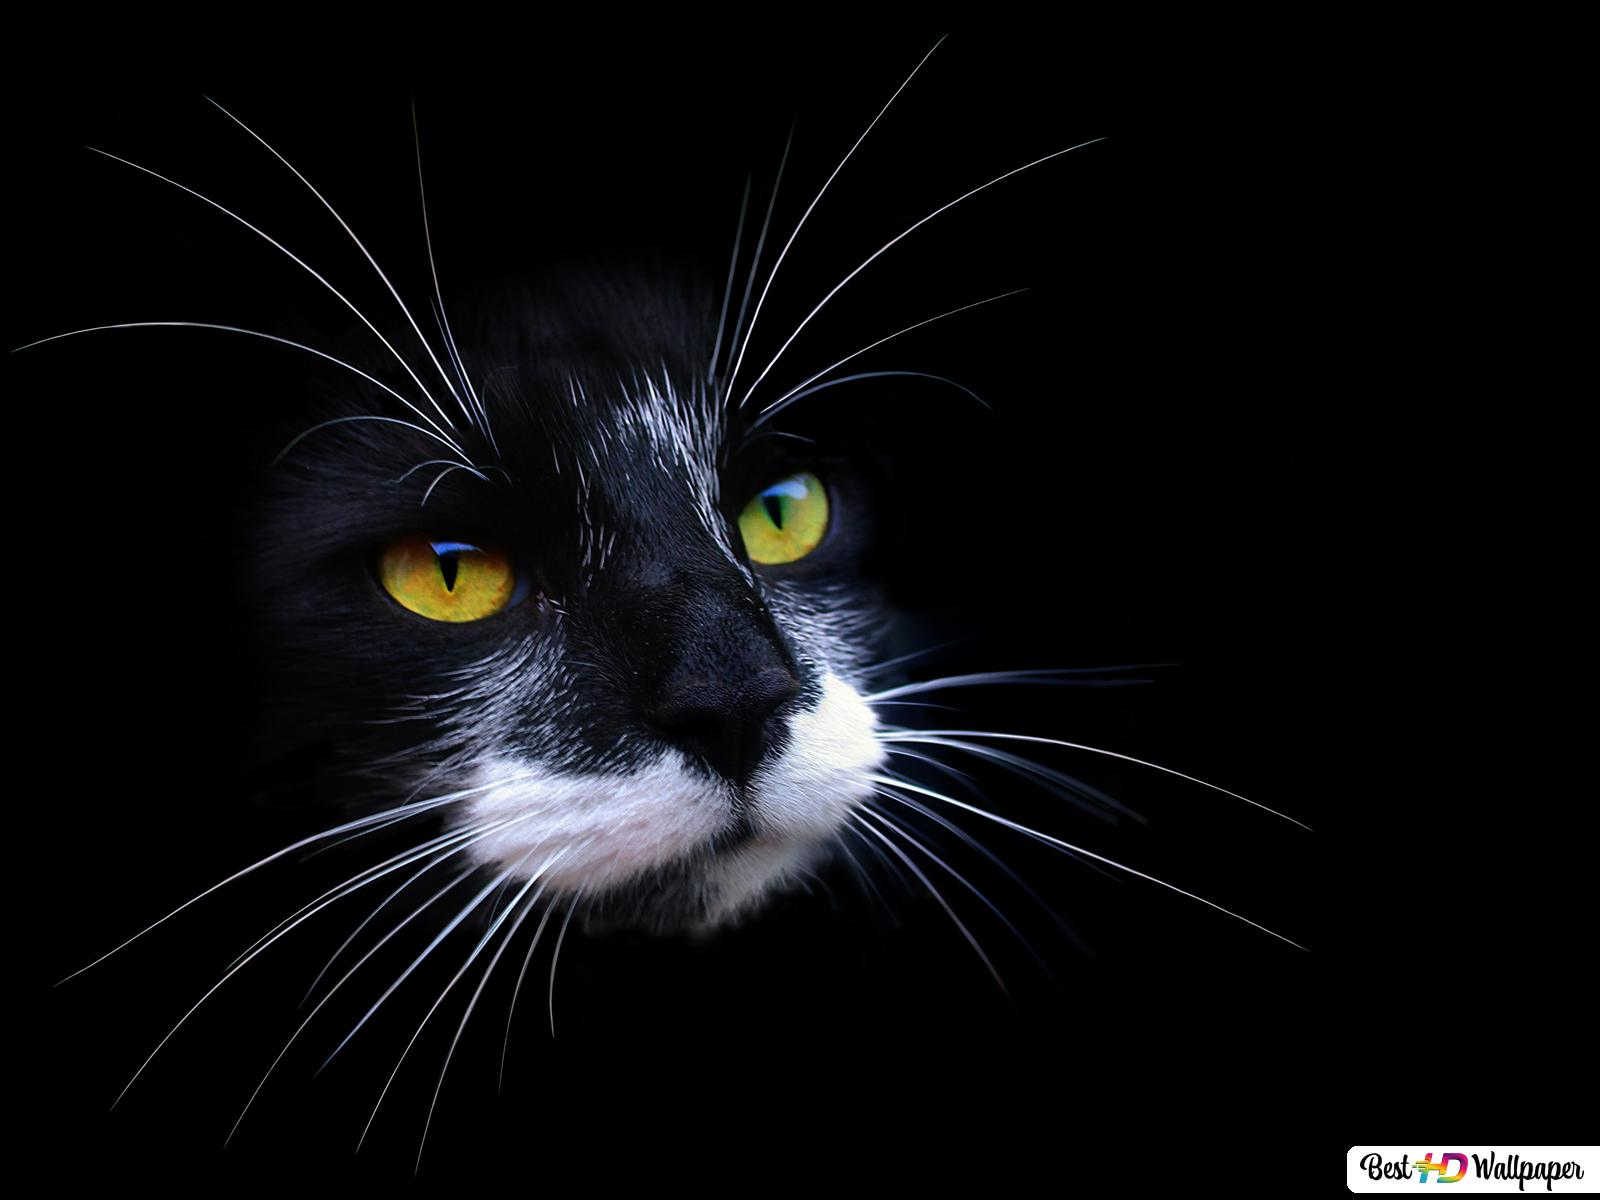 Black Cat With Yellow Eyes And Long Whiskers In A Black Background Hd Wallpaper Download